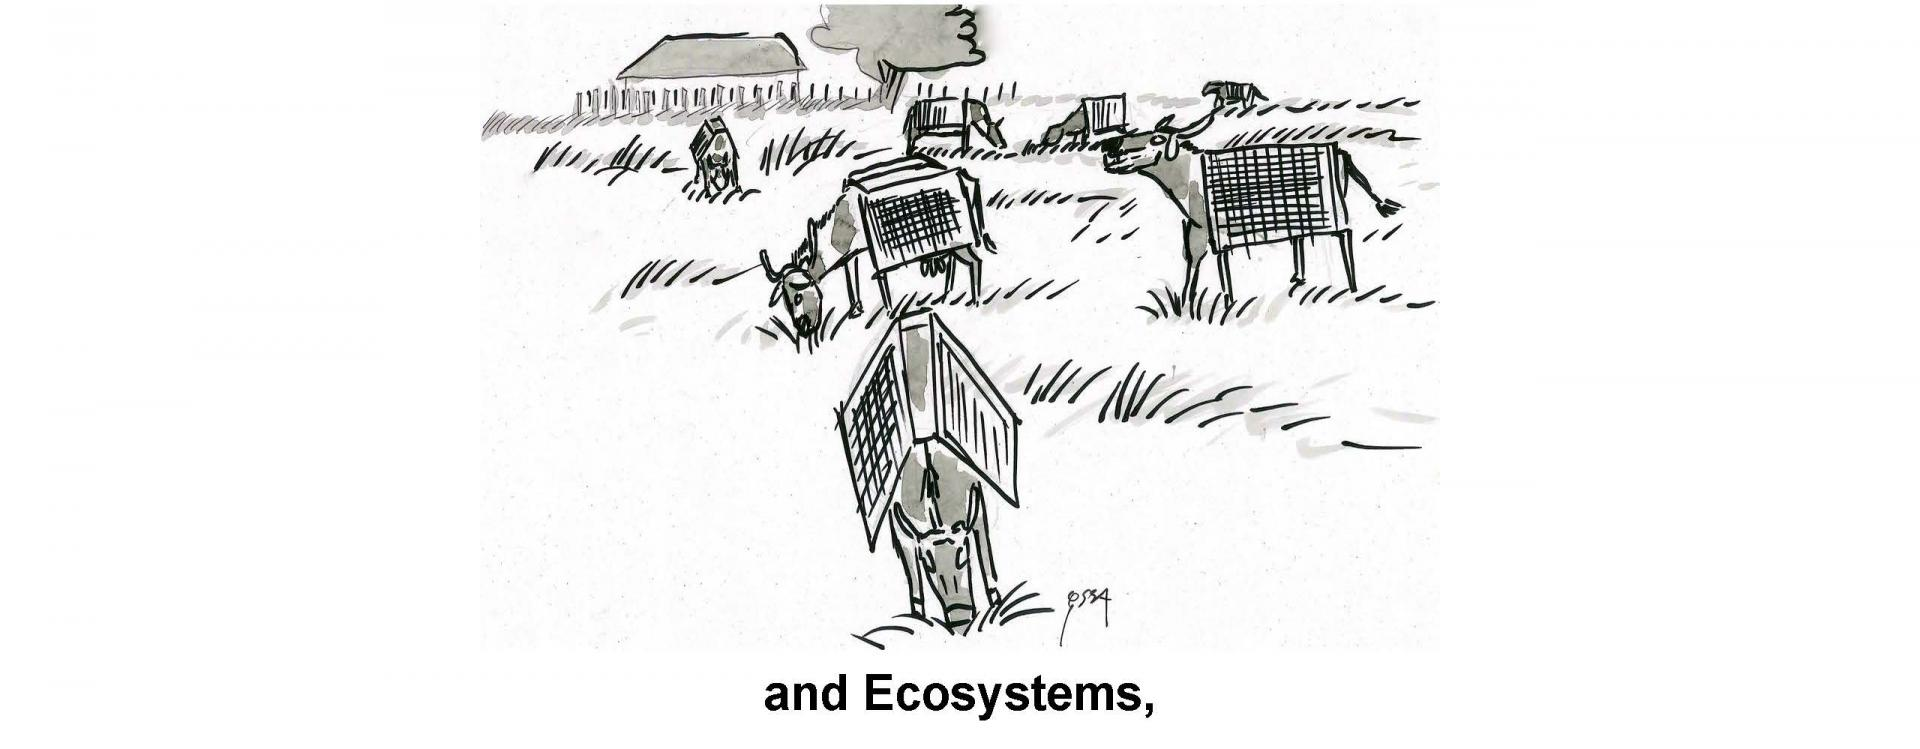 and Ecosystems,